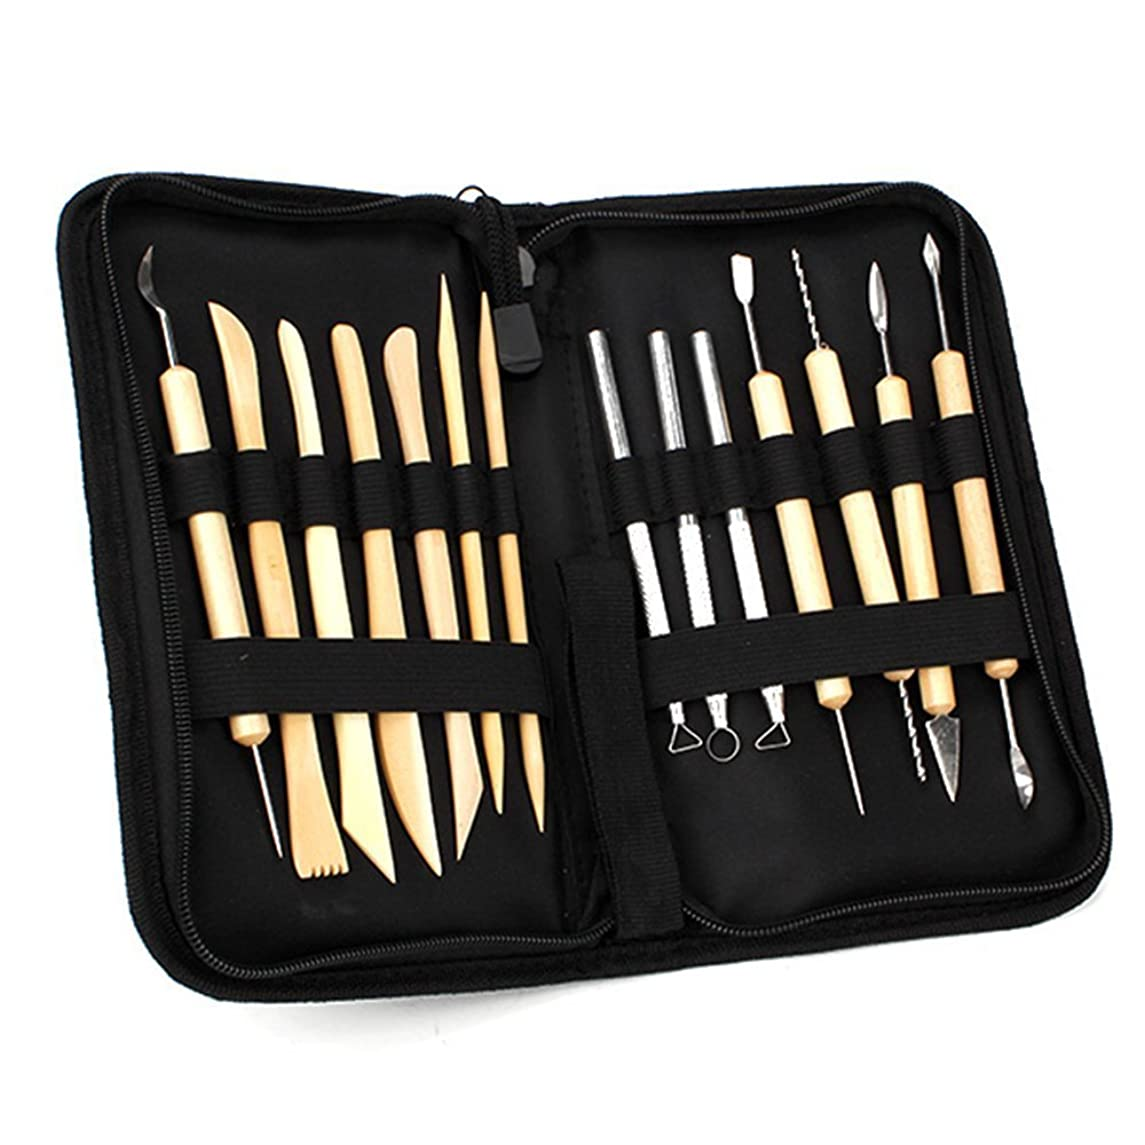 ND DN Ceramic Clay Pottery Tools Sculpting Kit Set for Drilling Hole Carving Pack of 14